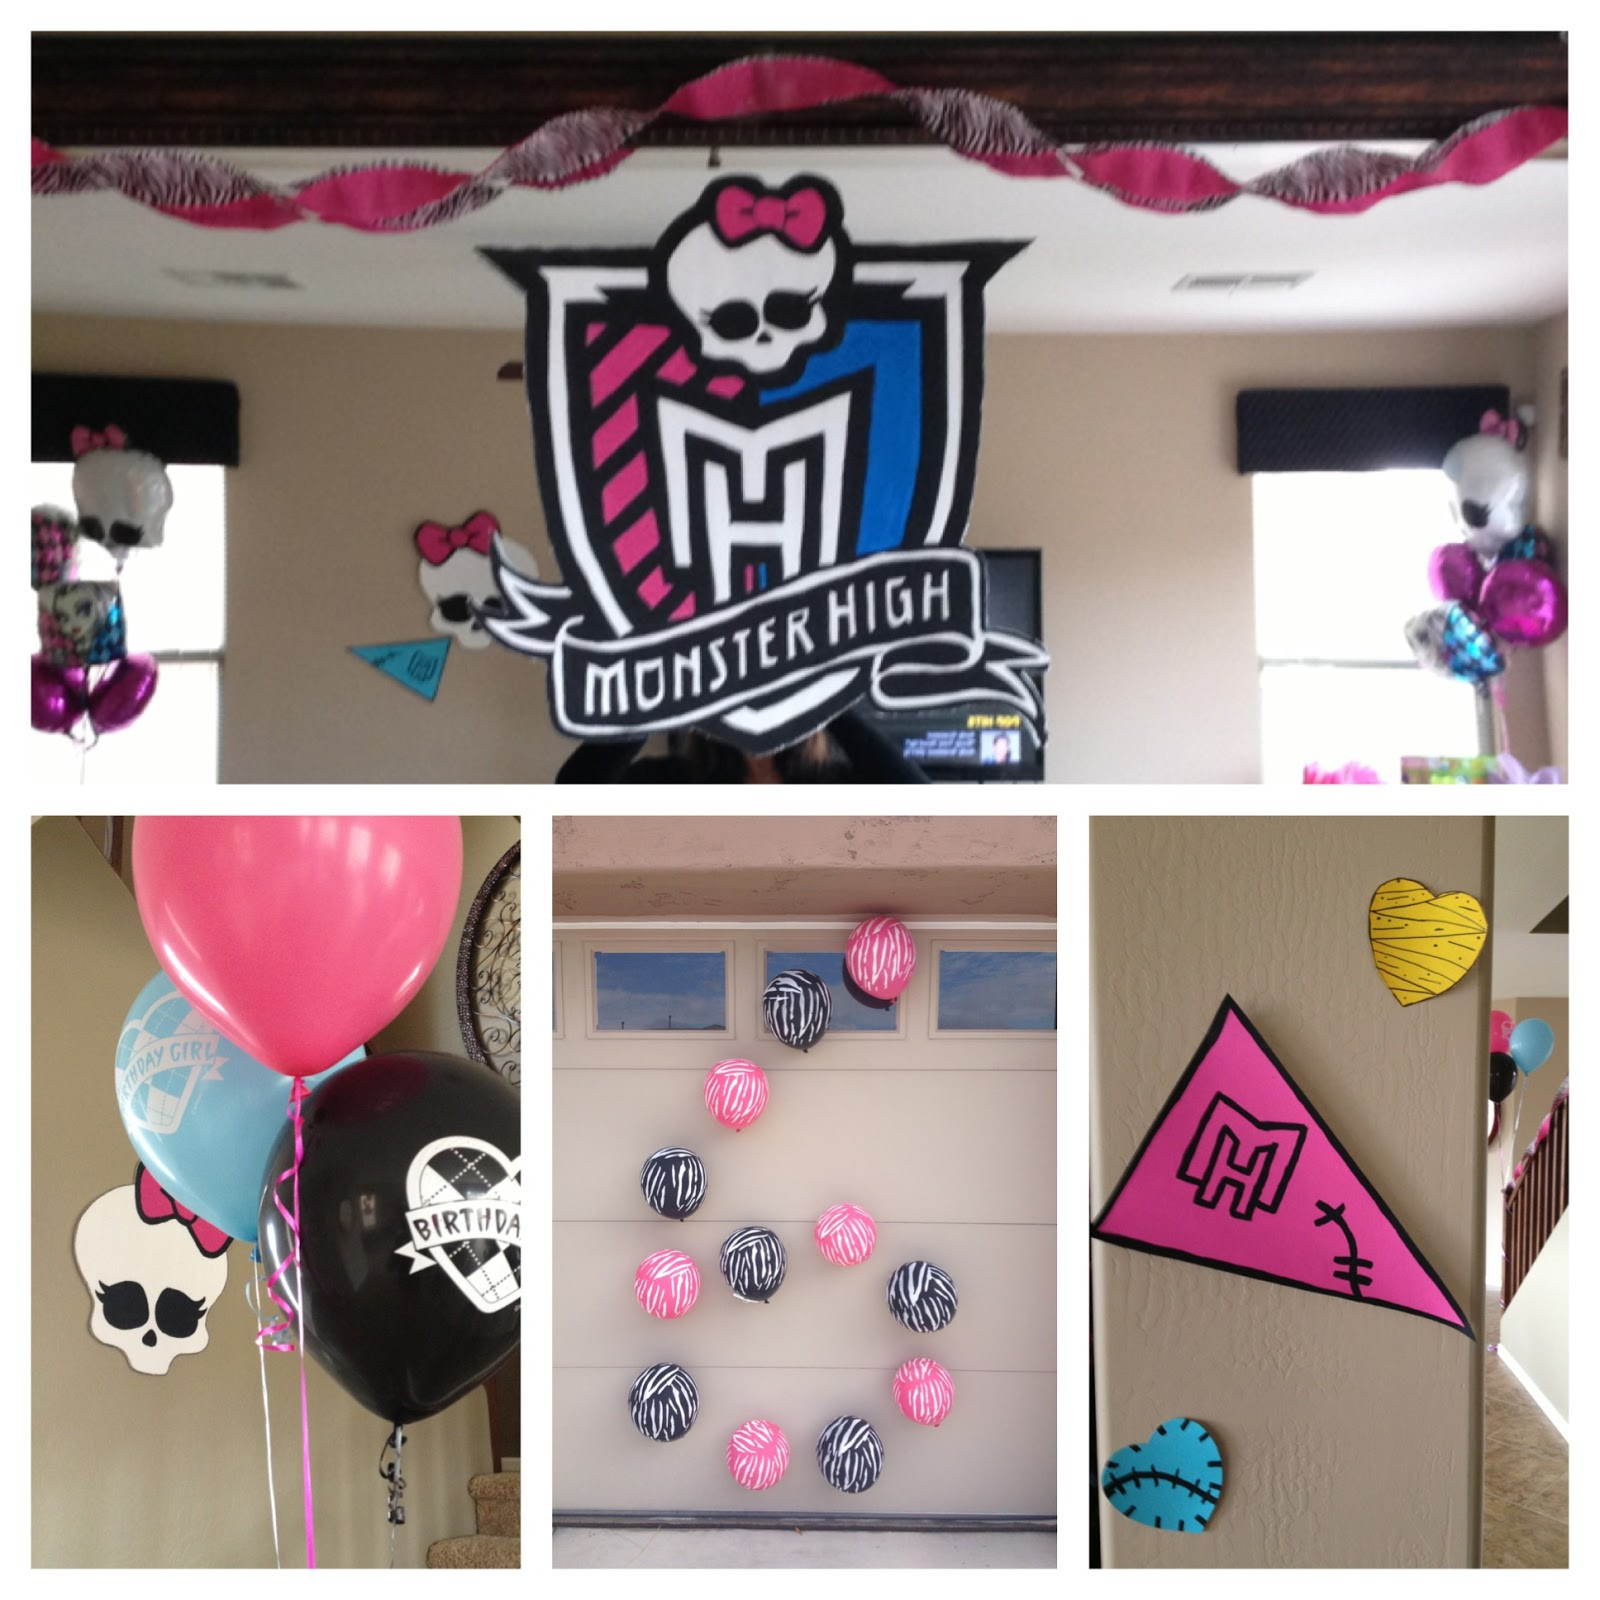 Best ideas about Monster High Birthday Decorations . Save or Pin The Busy Broad Monster High Party Decorations Now.